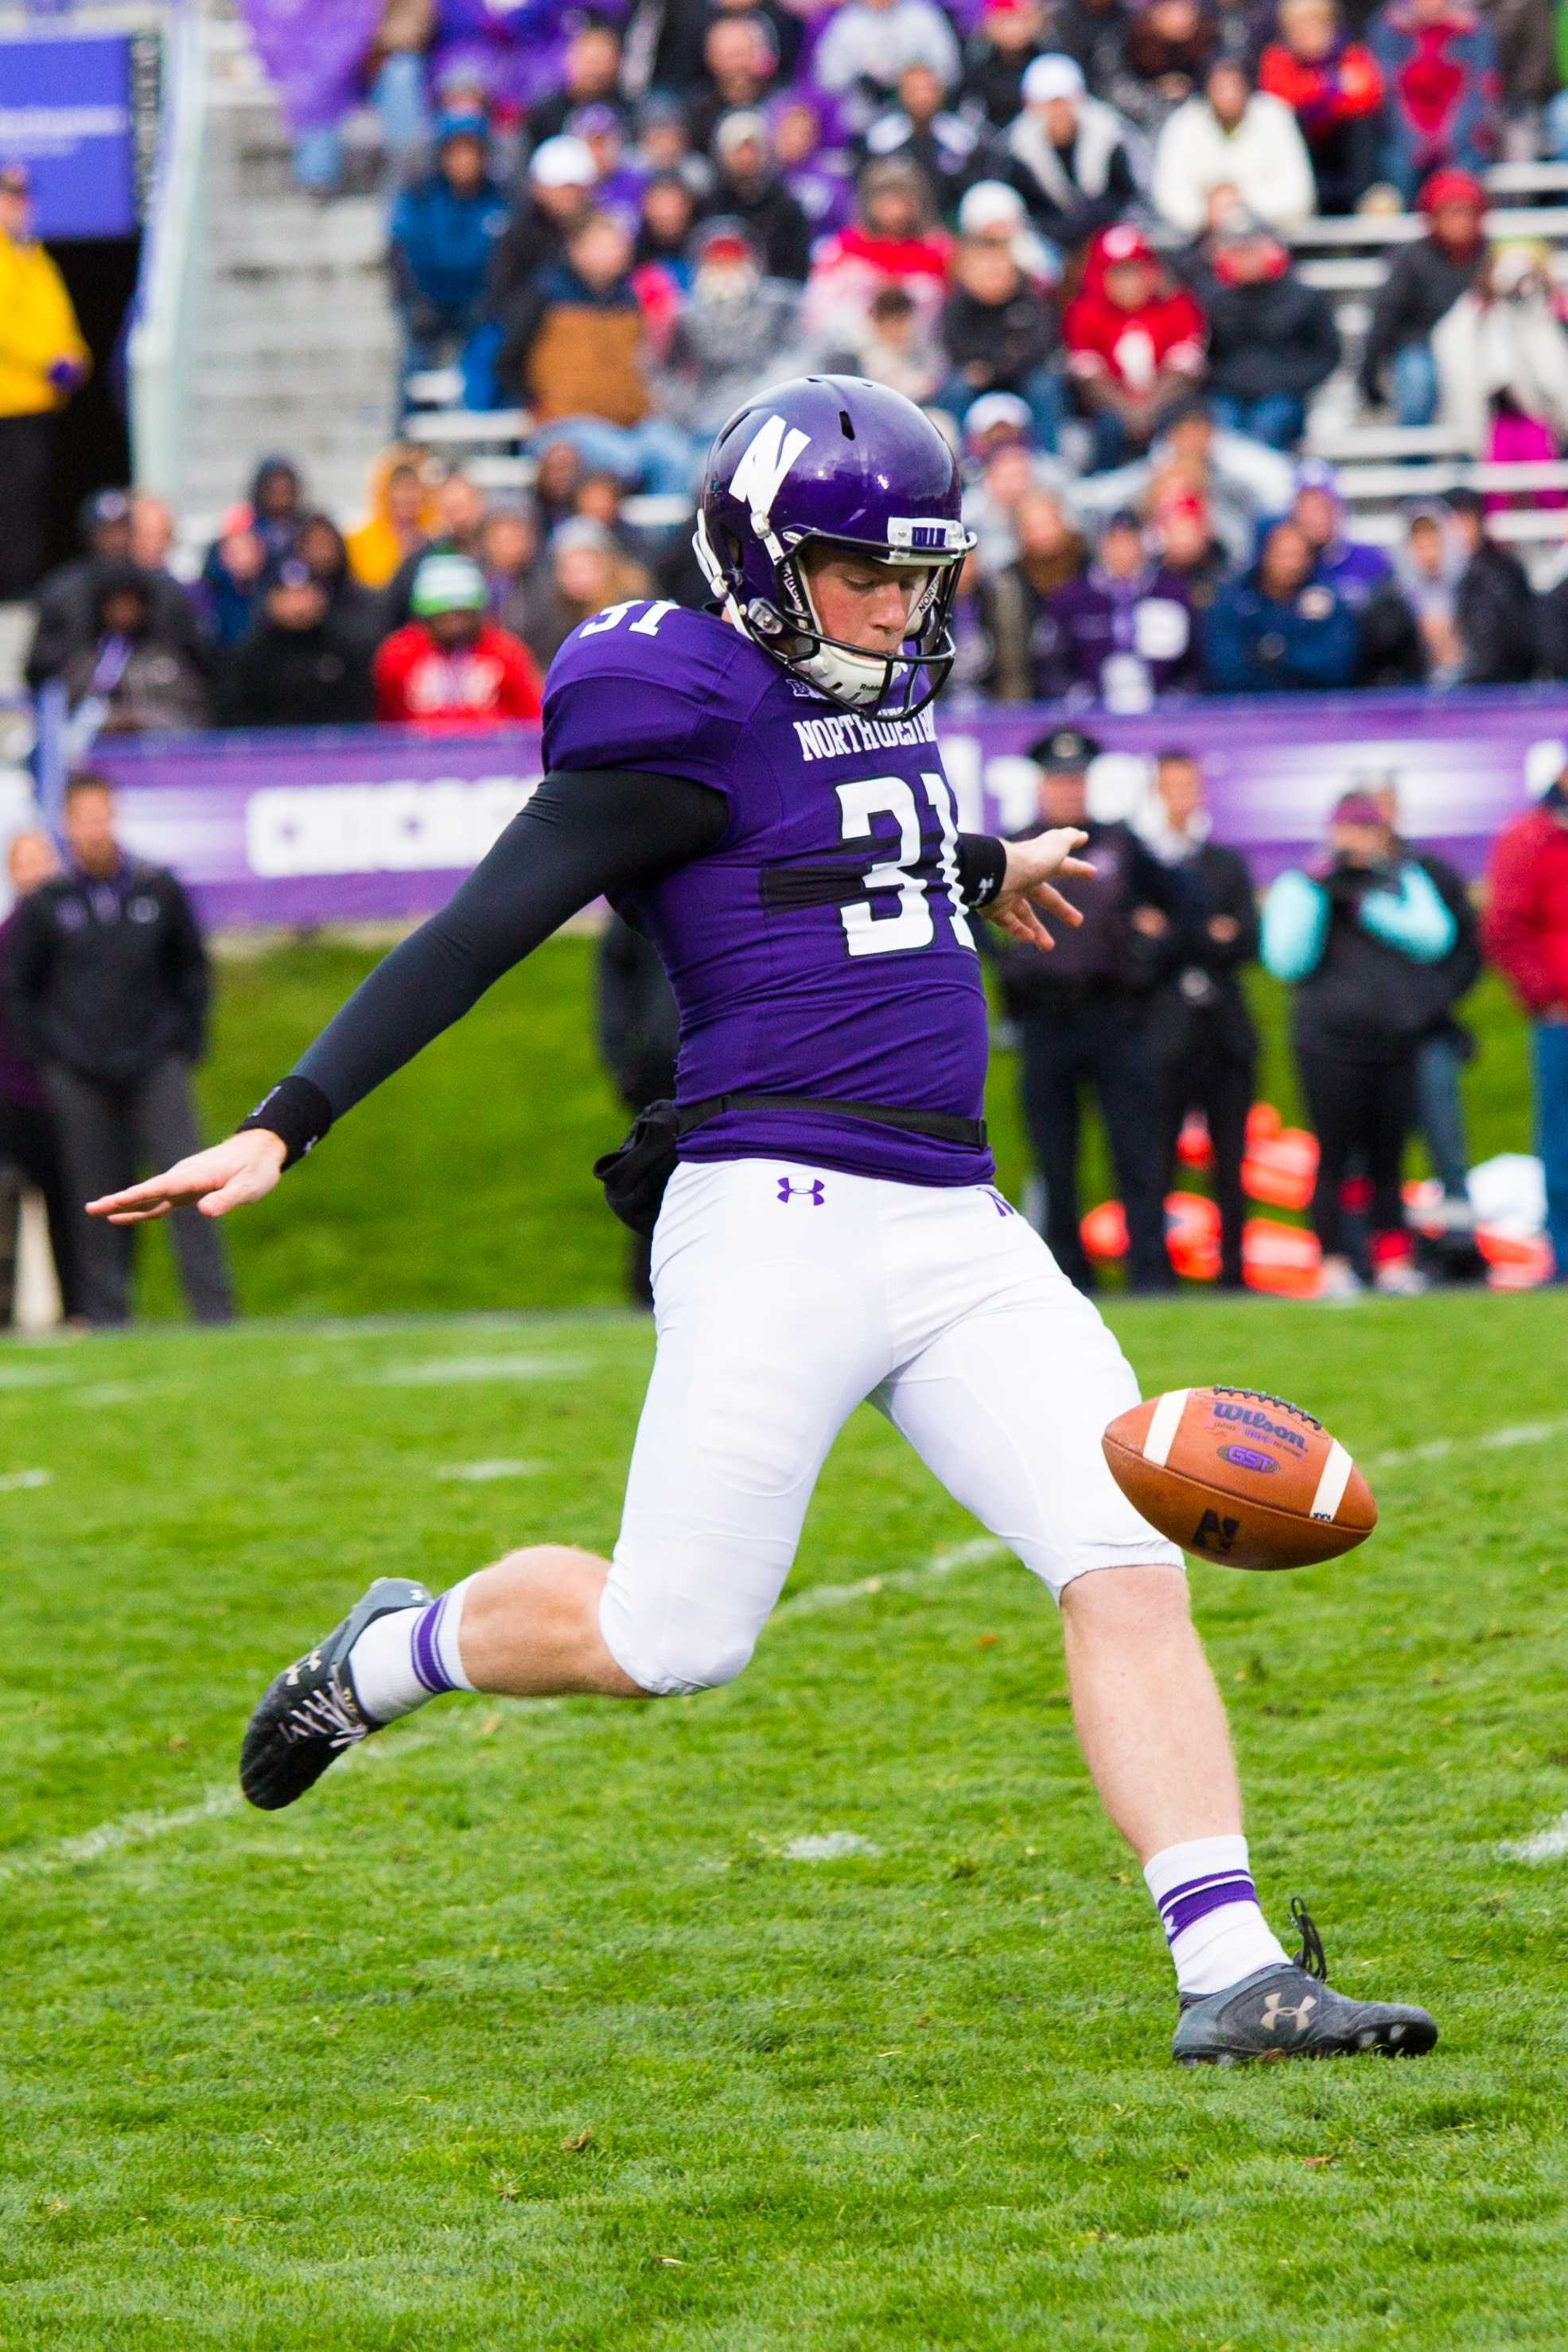 Junior punter Chris Gradone has come on strong during Northwestern's current three-game winning streak, consistently pinning opponents deep in their own territory.